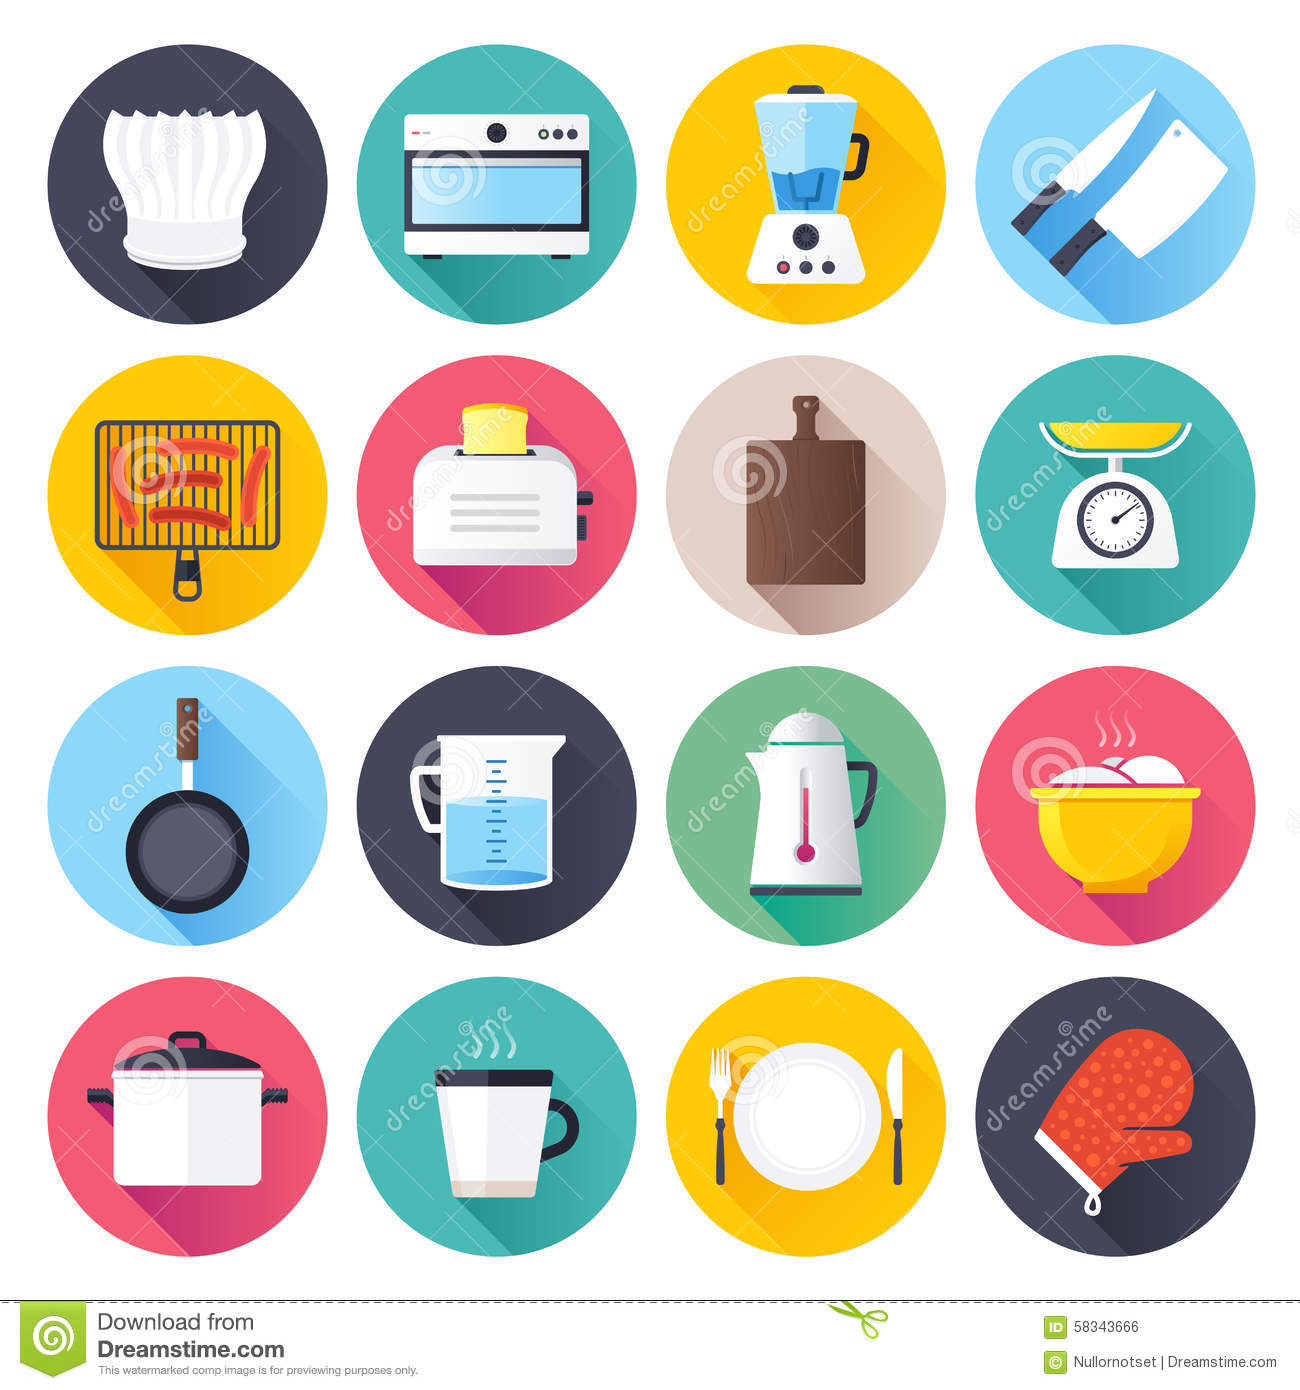 kitchen flat icon set stock vector - image: 58343666